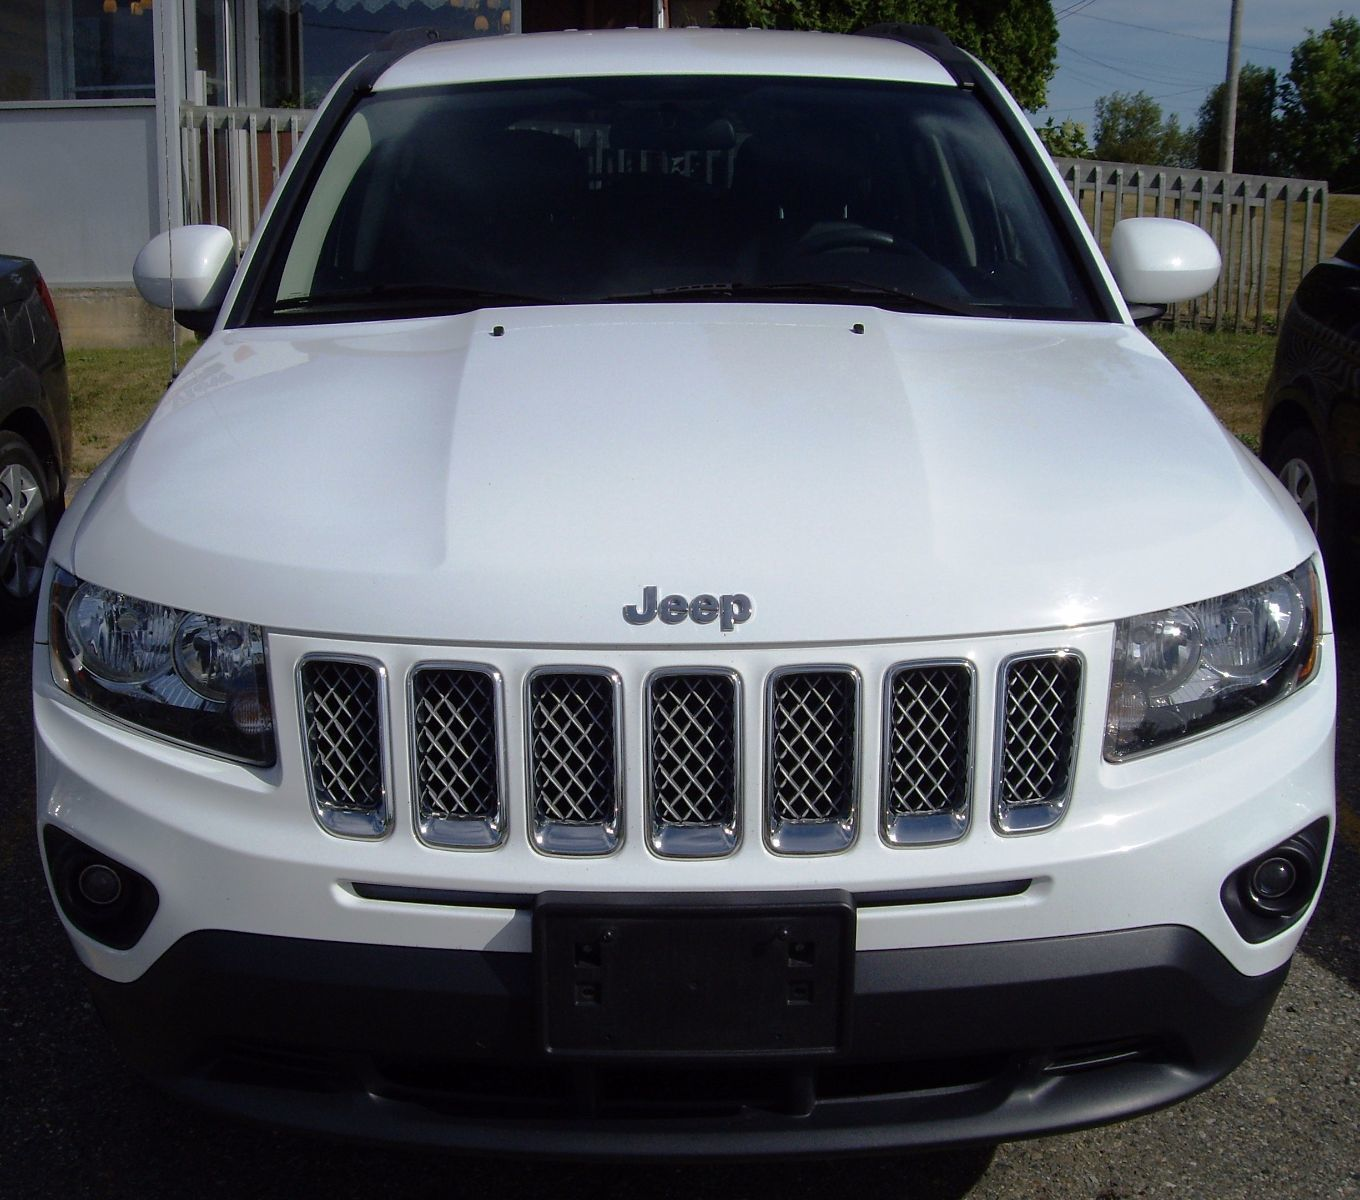 Jeep Compass Used Car: Used 2015 Jeep Compass SPORT In New Germany